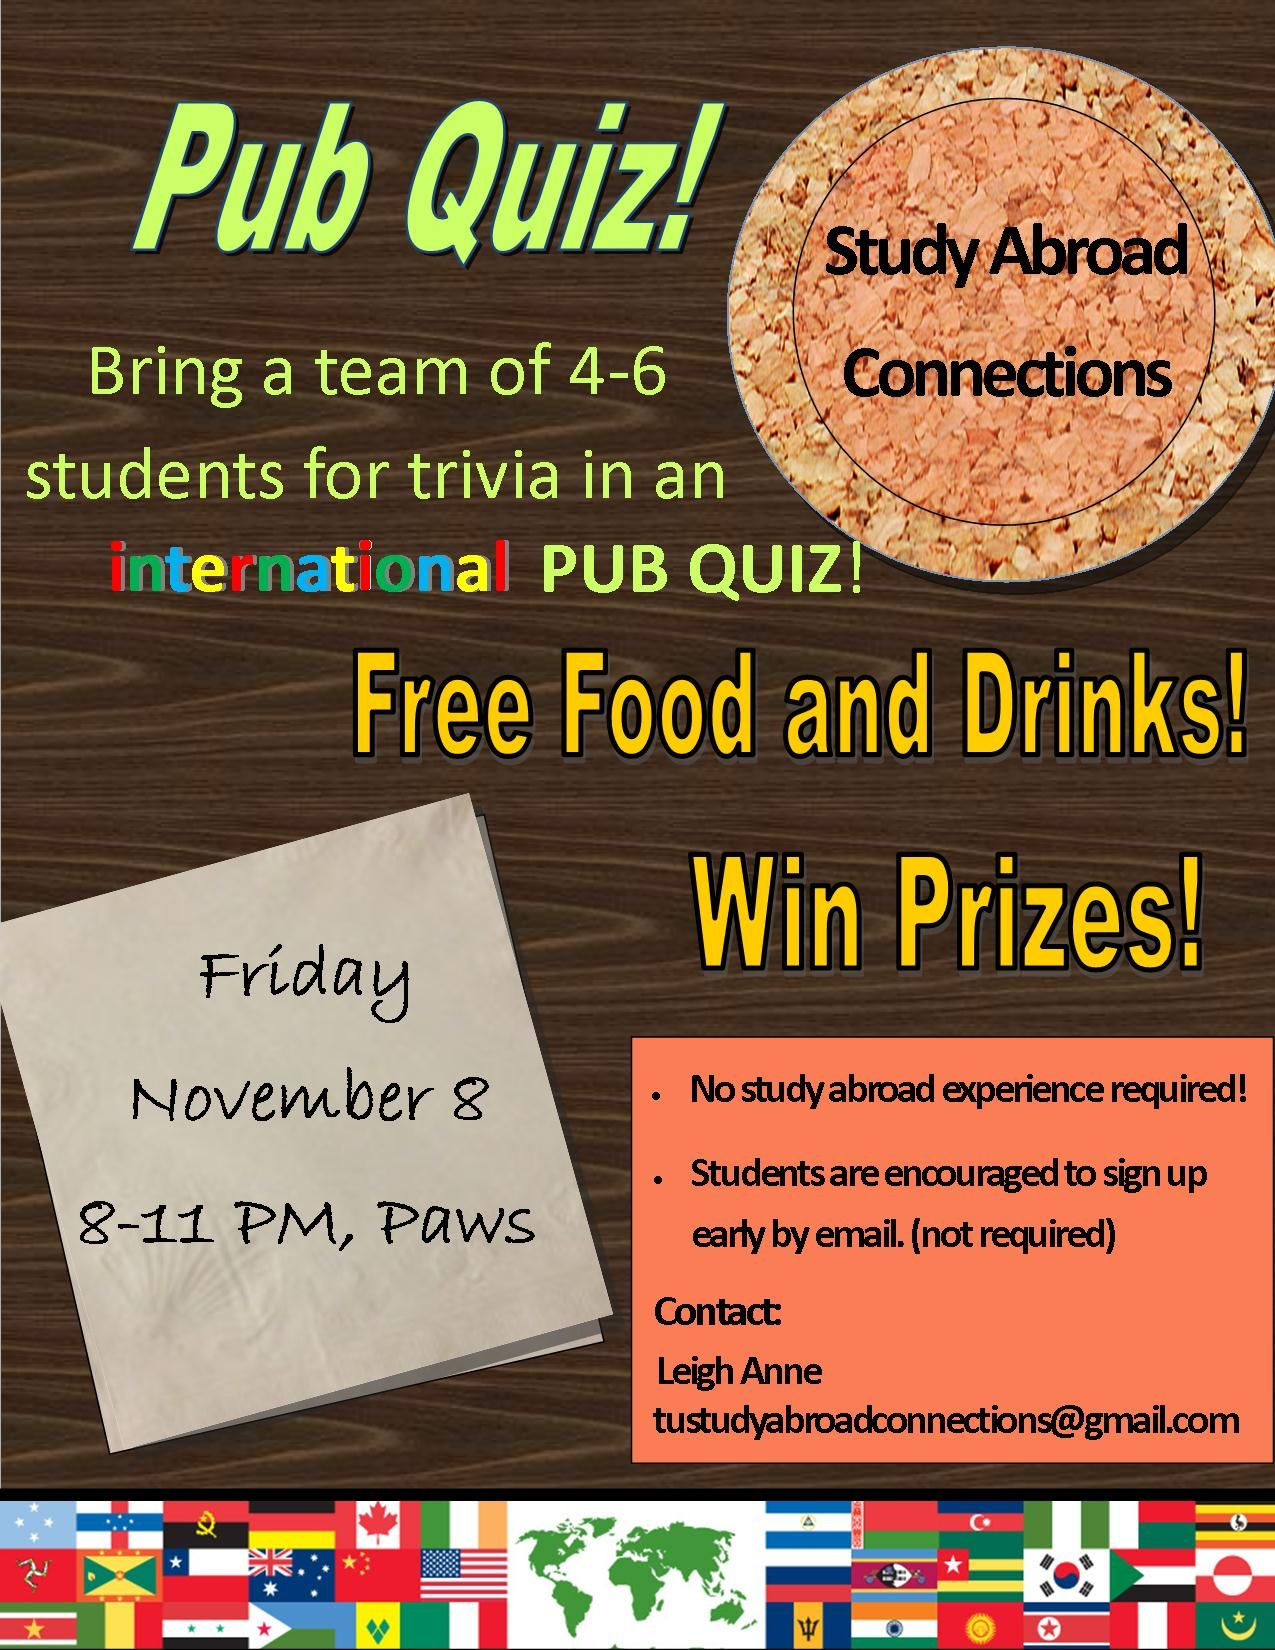 Come Out To The International Pub Quiz Hosted By Study